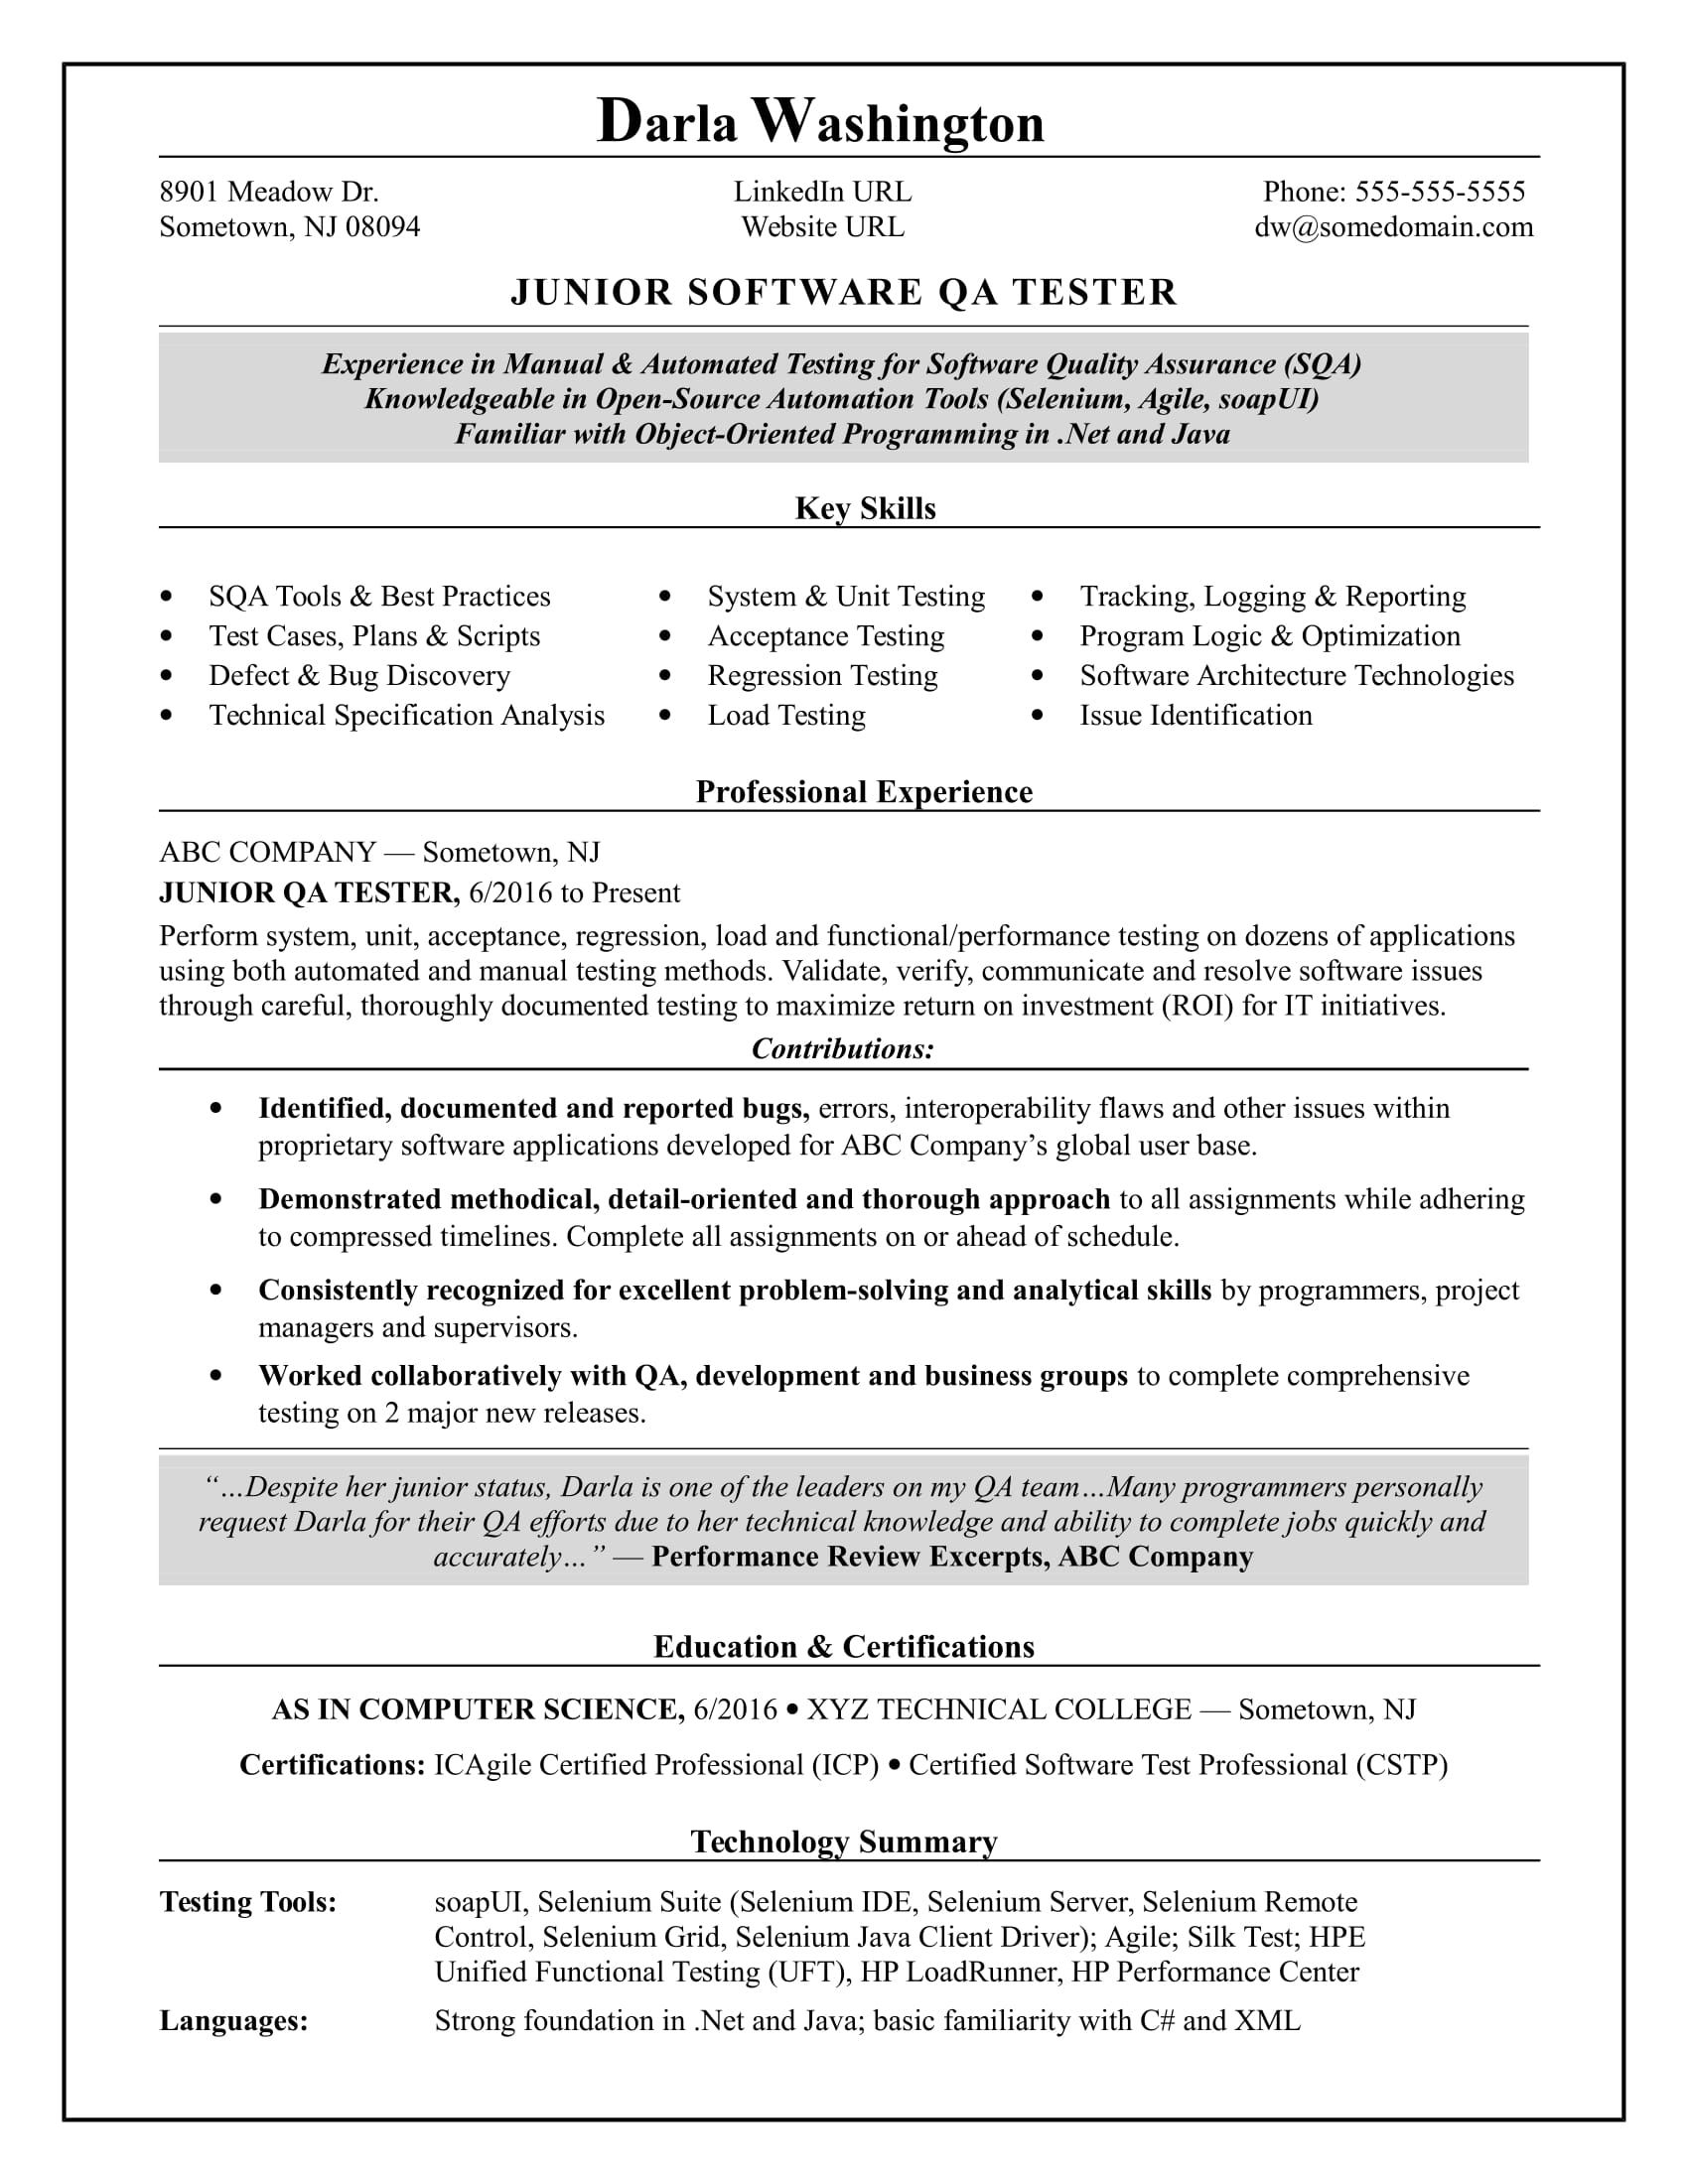 Qa Sample Resume Experienced Qa Software Tester Resume Sample  Resume Advice And .